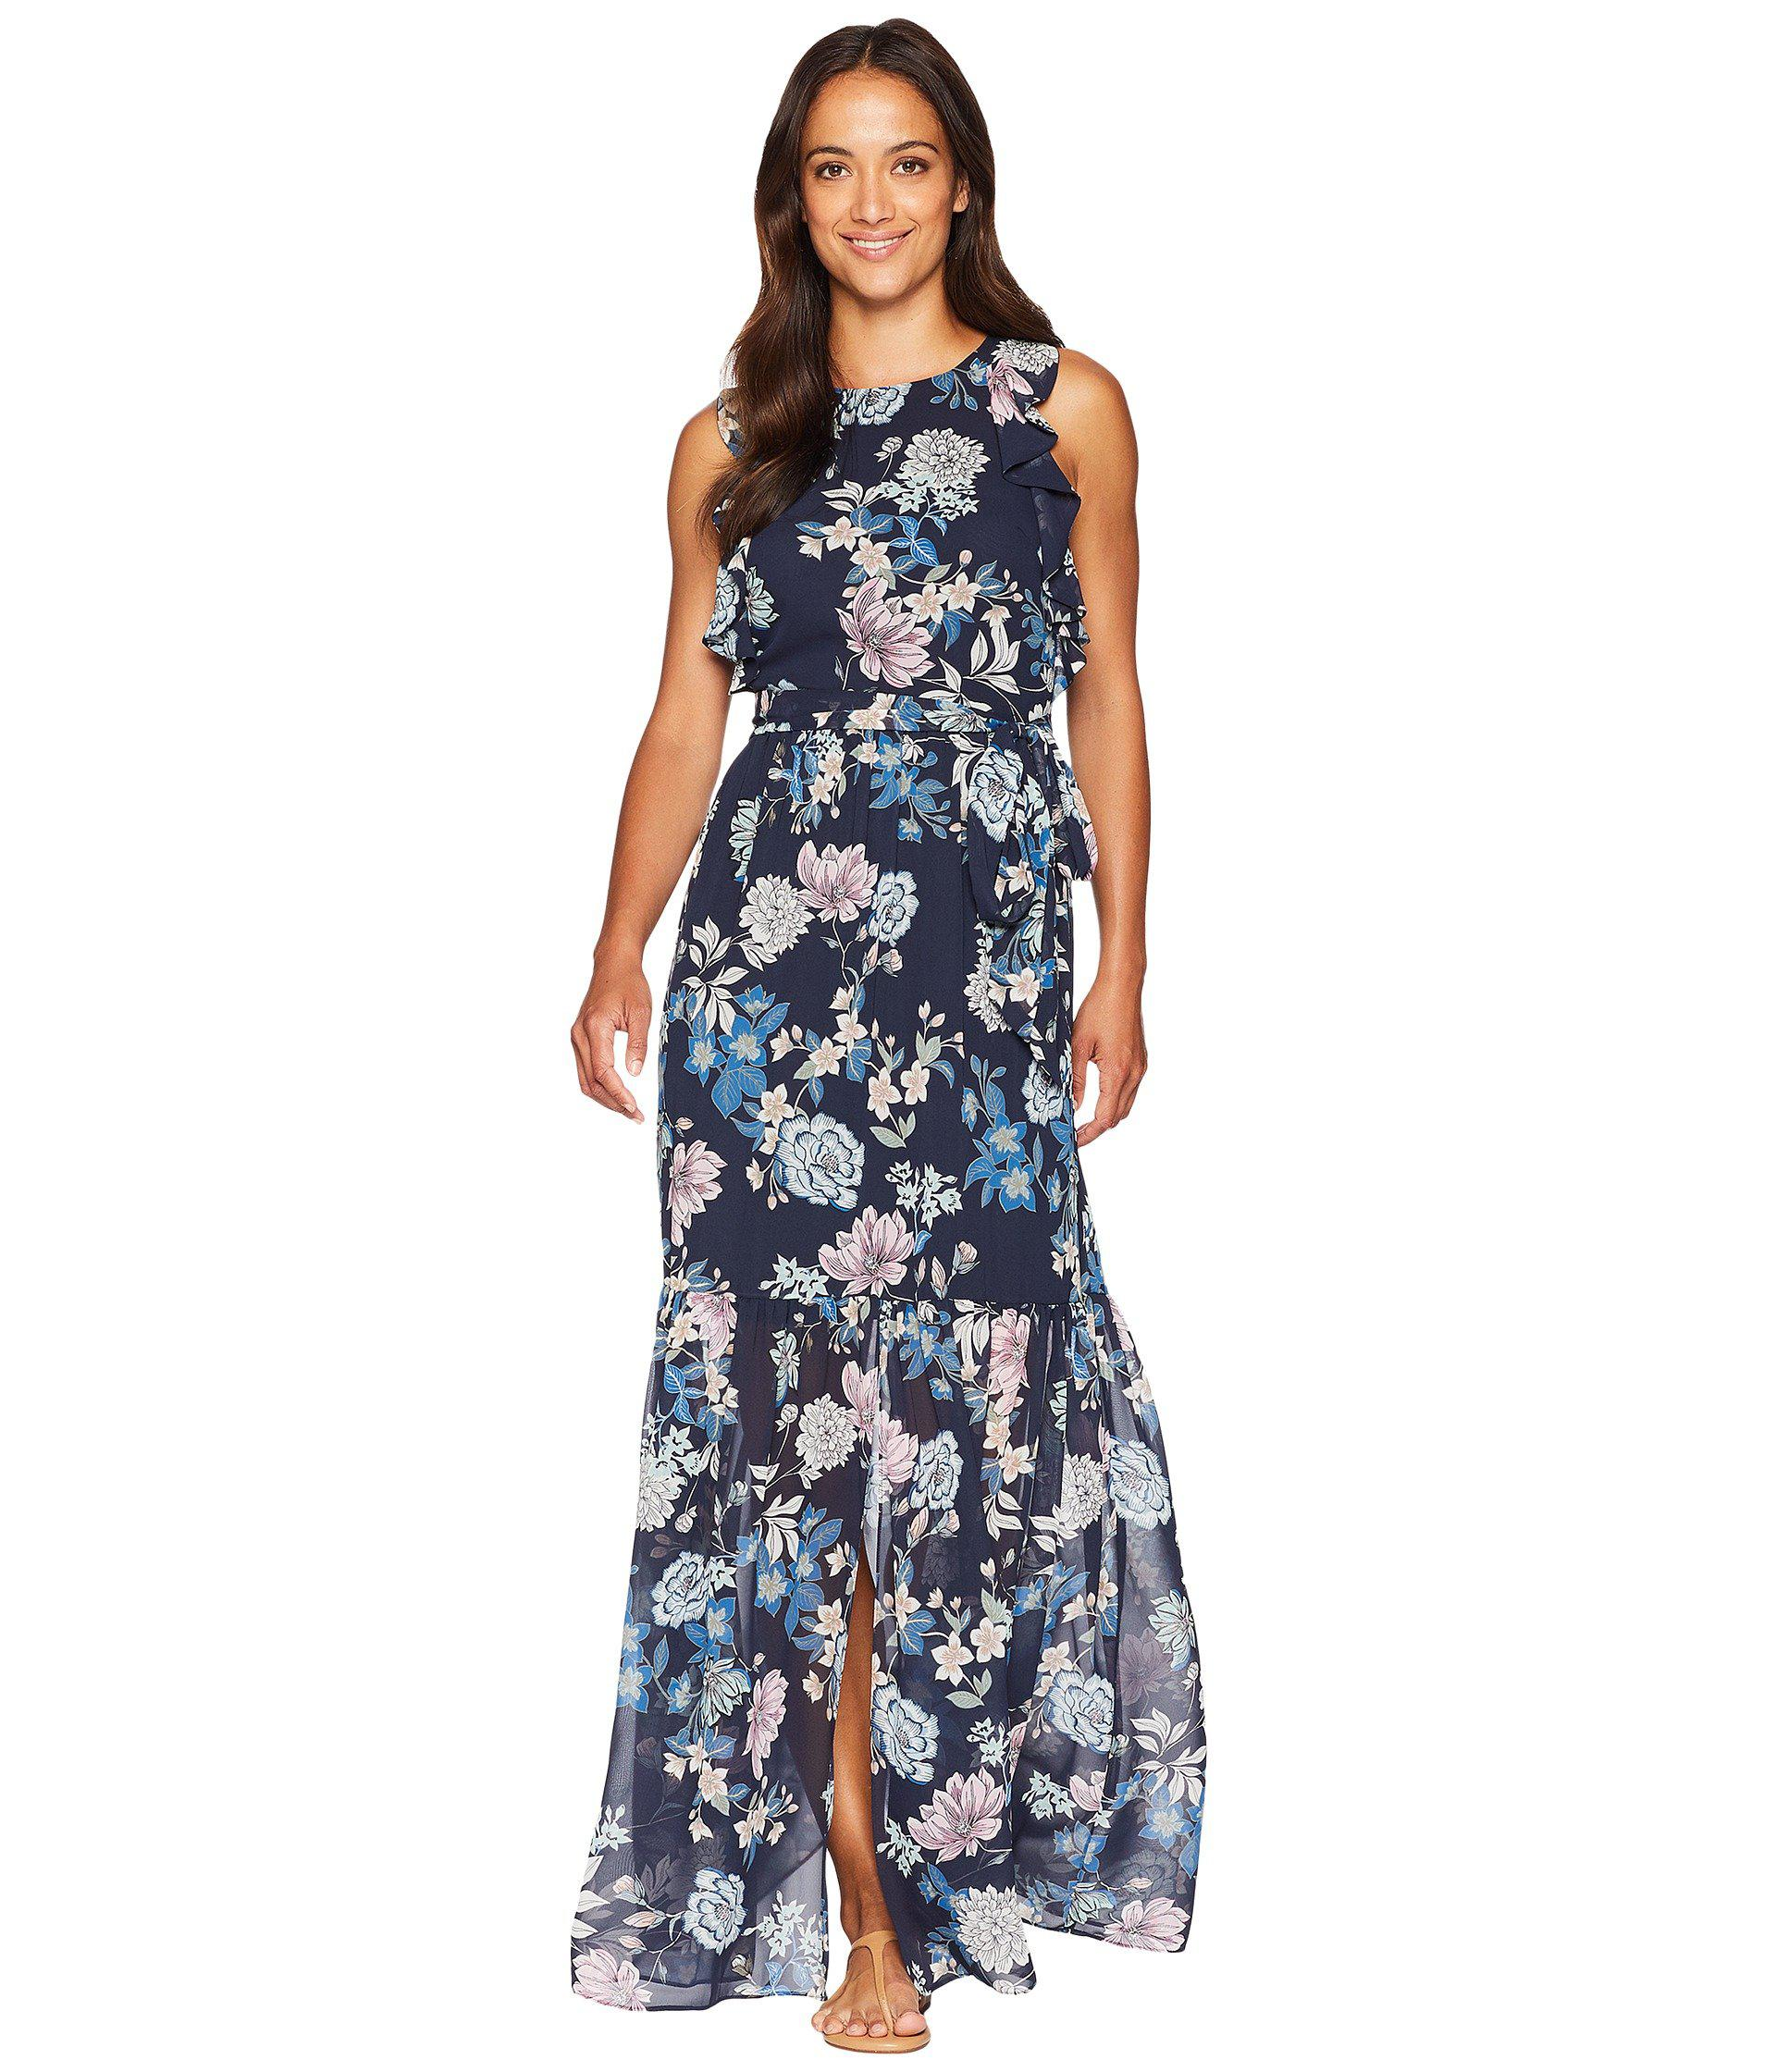 af013bfdaf4 Lyst - Vince Camuto Printed Chiffon Maxi With Ruffle Bodice With ...